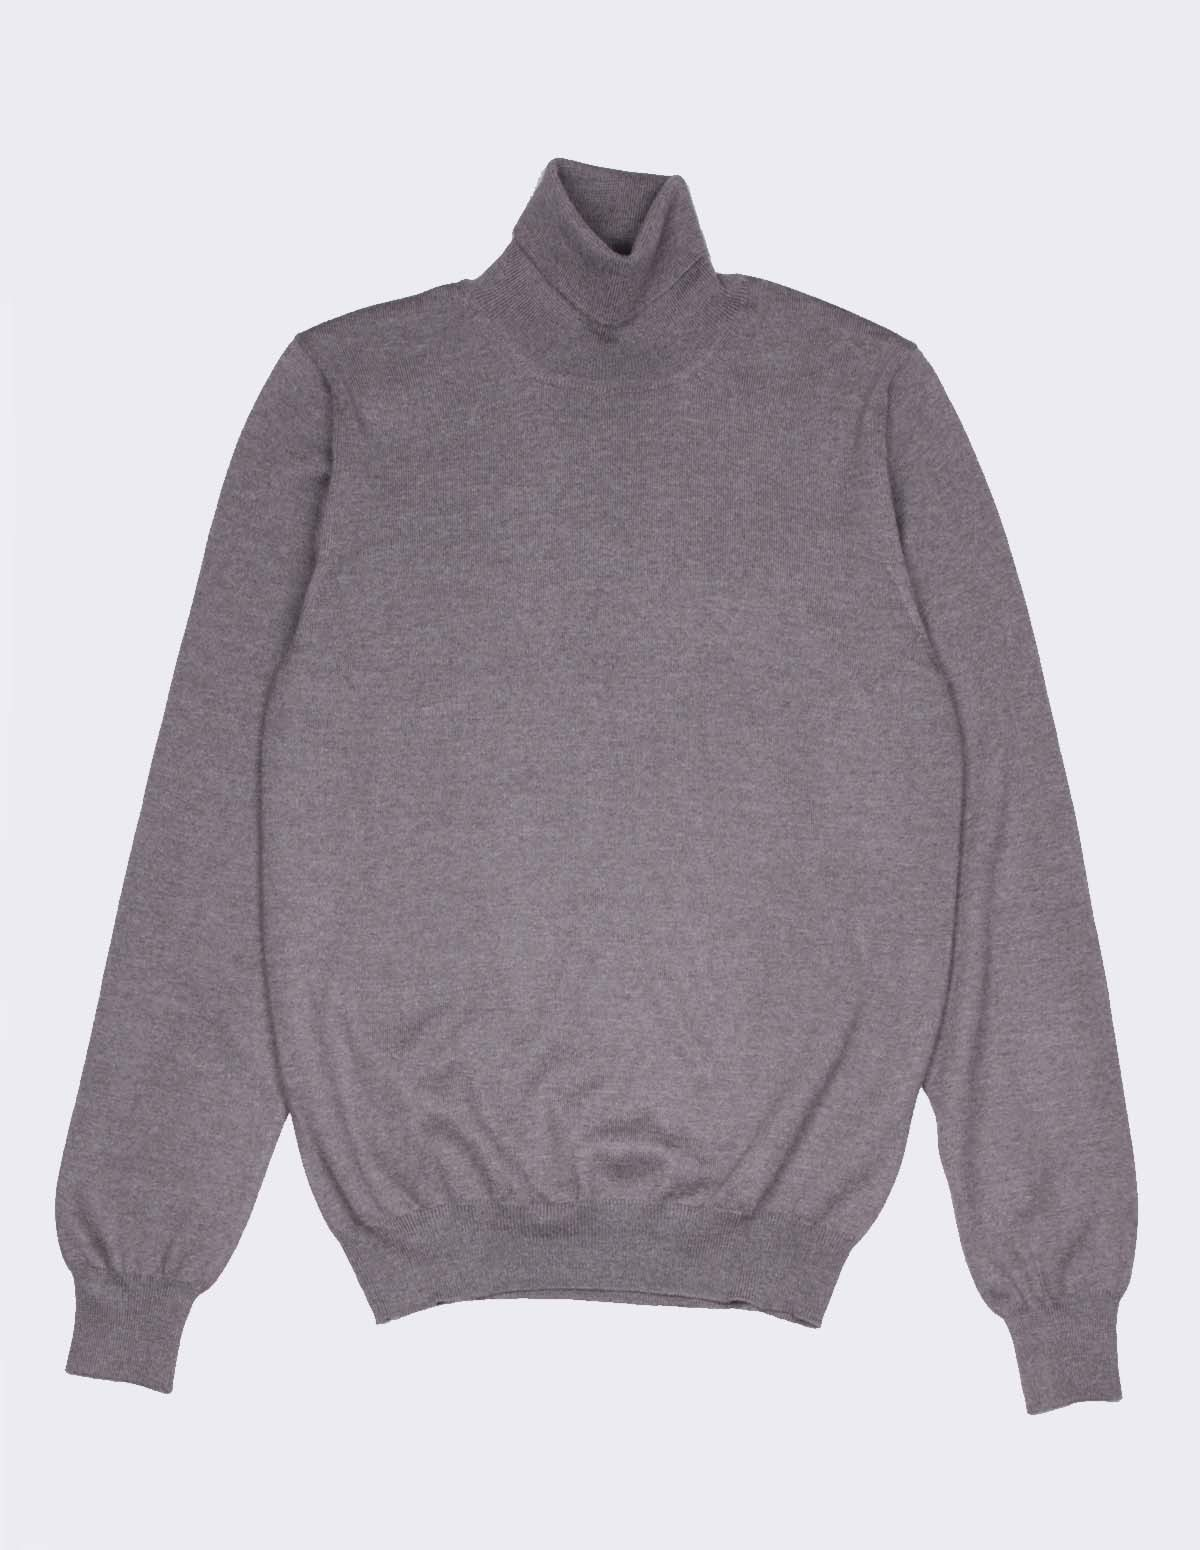 Ft Rollneck Sweater - TAUPE 046